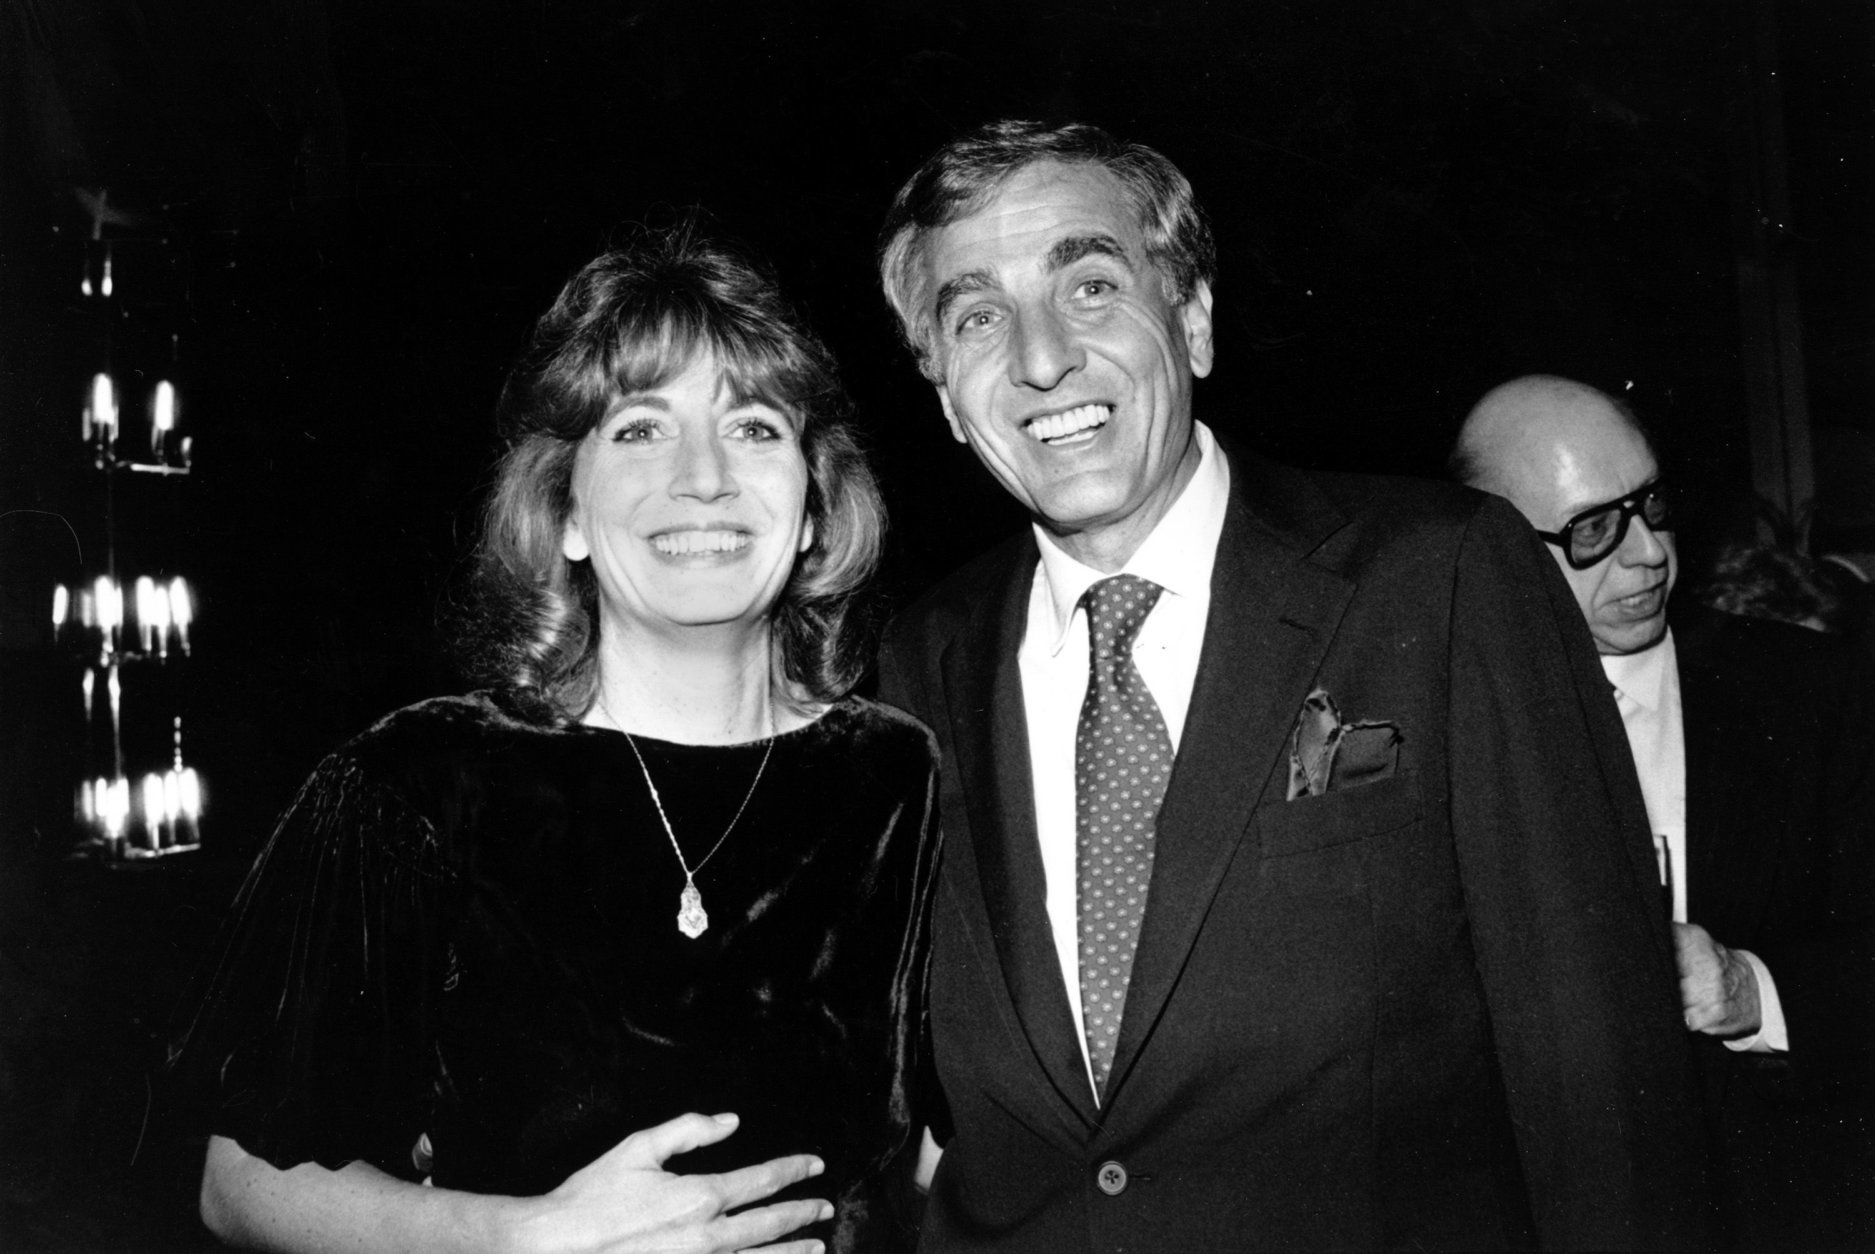 Actress Penny Marshall poses with her brother, producer-director Garry Marshall, in Los Angeles, Ca., Saturday night on Dec. 6, 1982.  They are at a dinner given in honor of Garry Marshall by the Los Angeles Free Clinic for his support.  (AP Photo/Nick Ut)